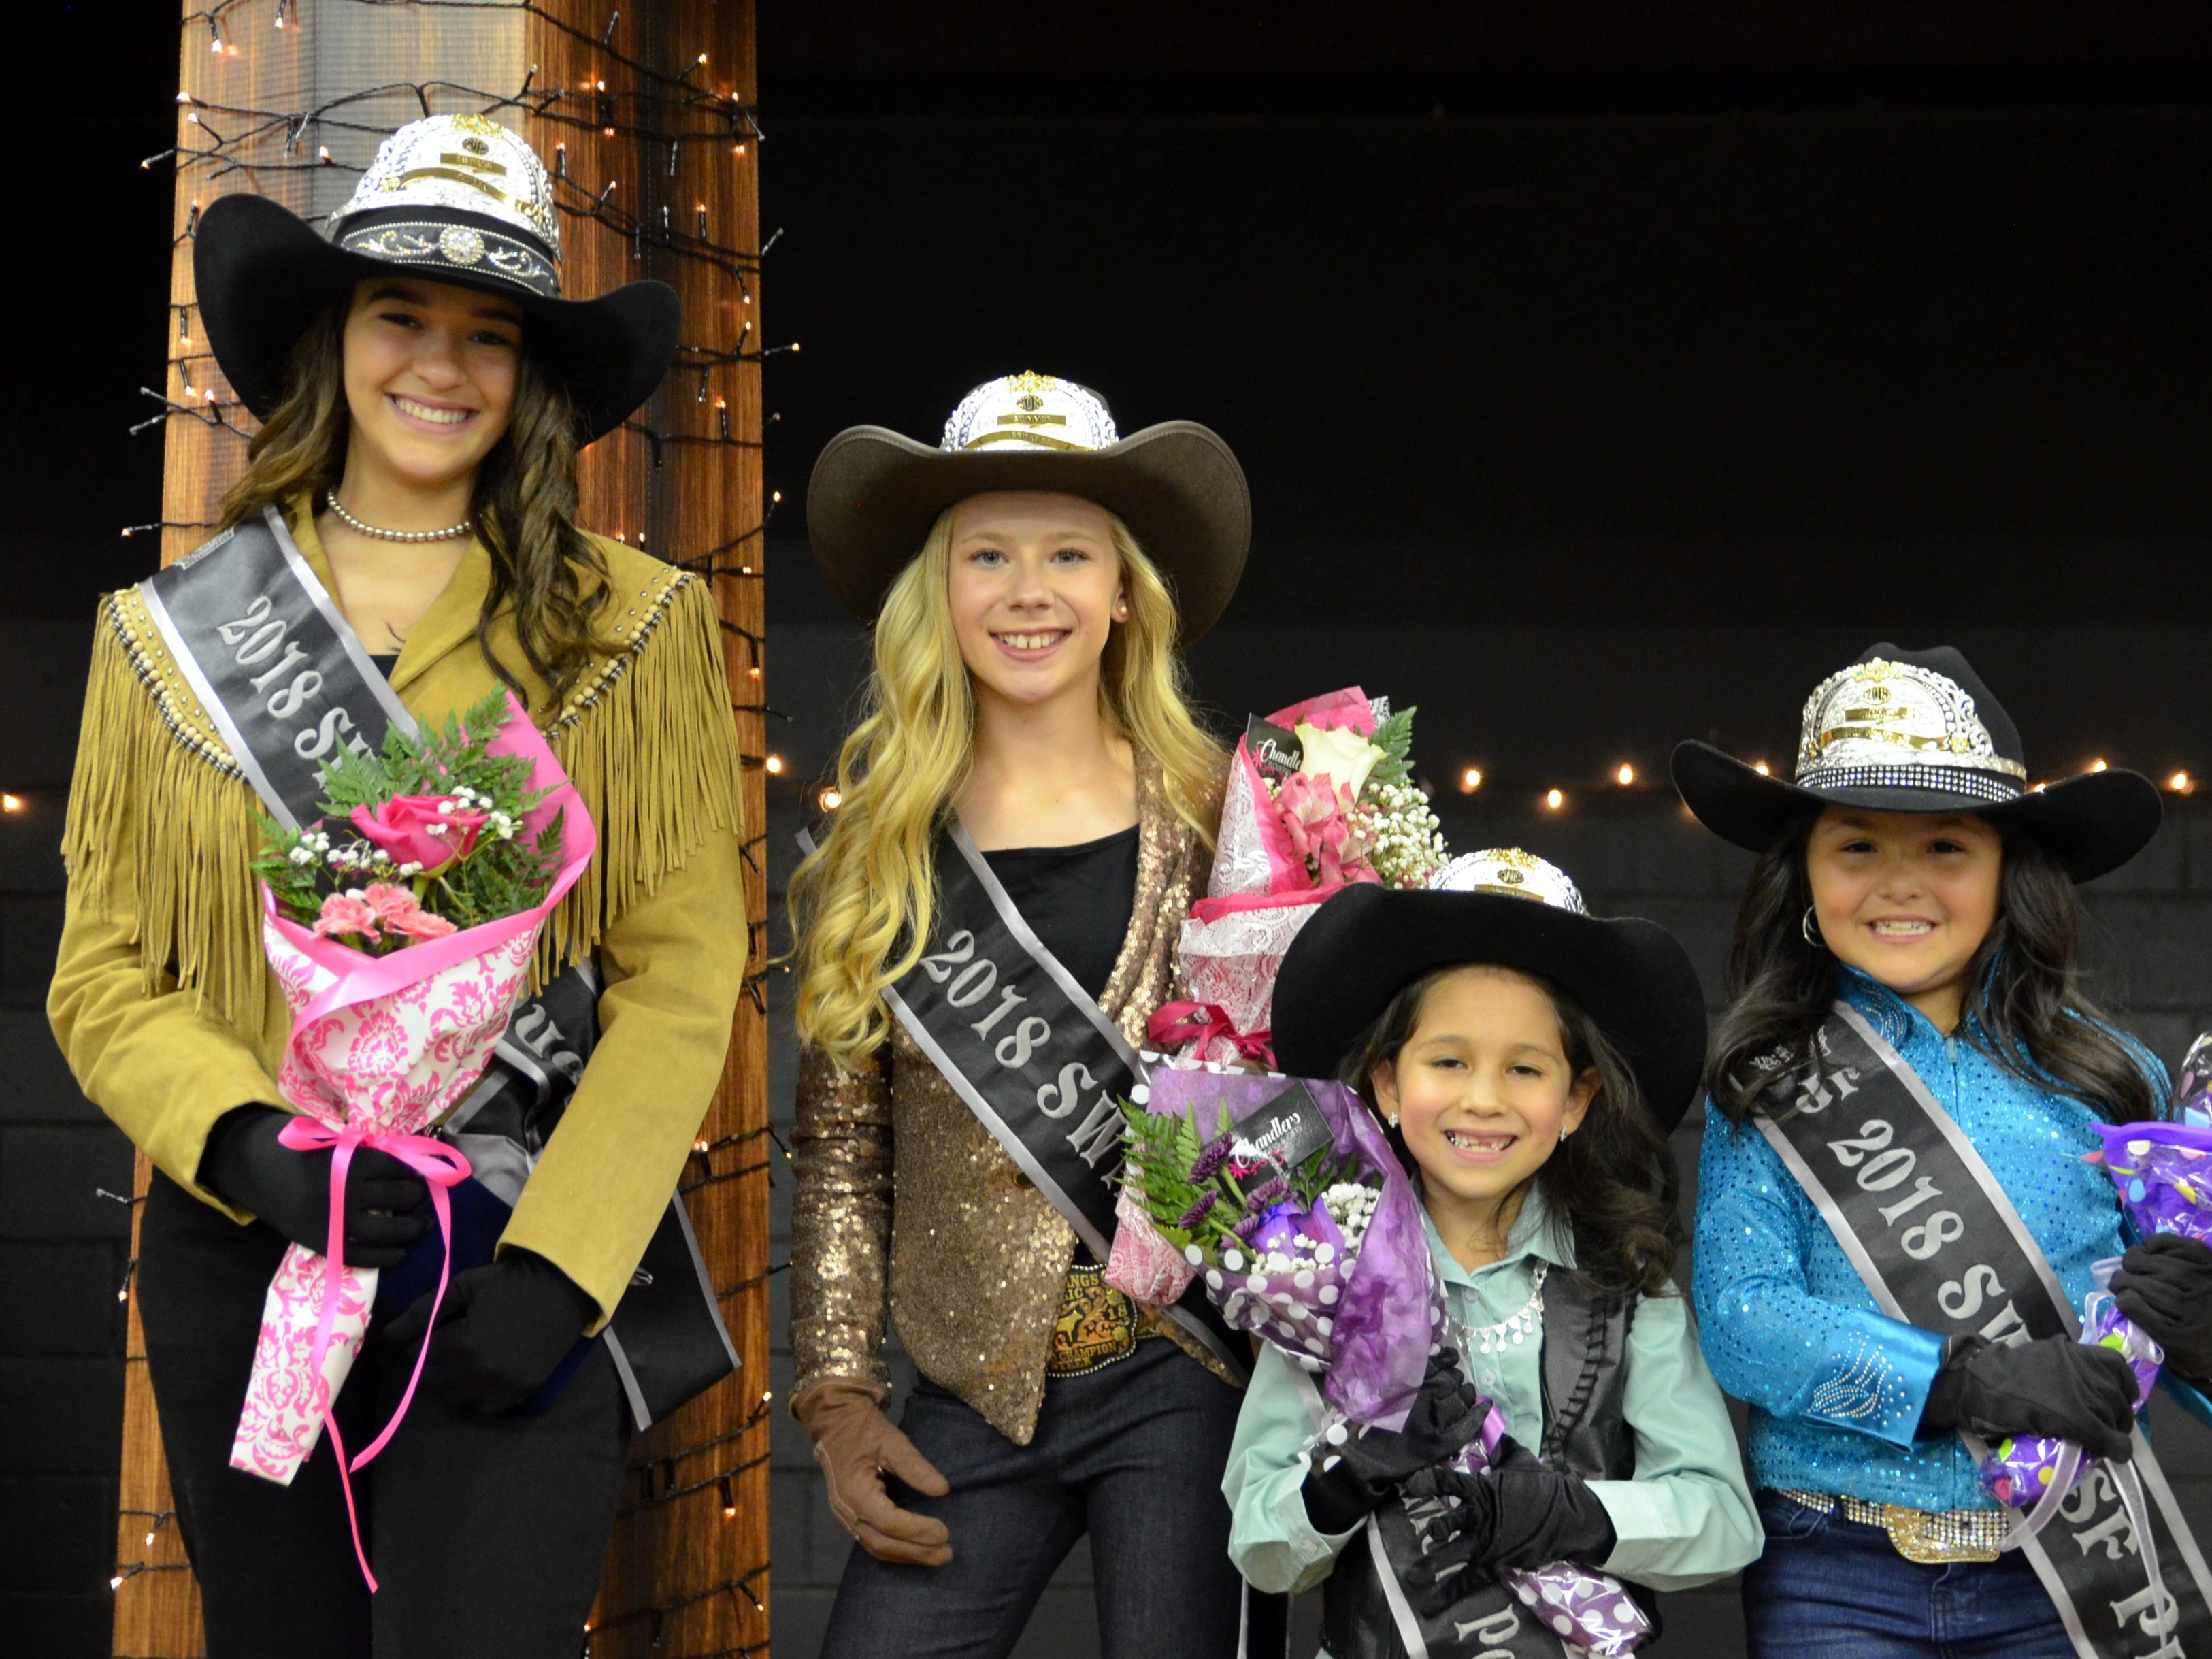 The 2018 Southwestern New Mexico State Fair Royalty are, from left, Melody Ruebush, queen; Blakely Hyatt, Princess; Xoe Grado, Pee Wee Princess; and Mariah Carlos, Junior Princess.